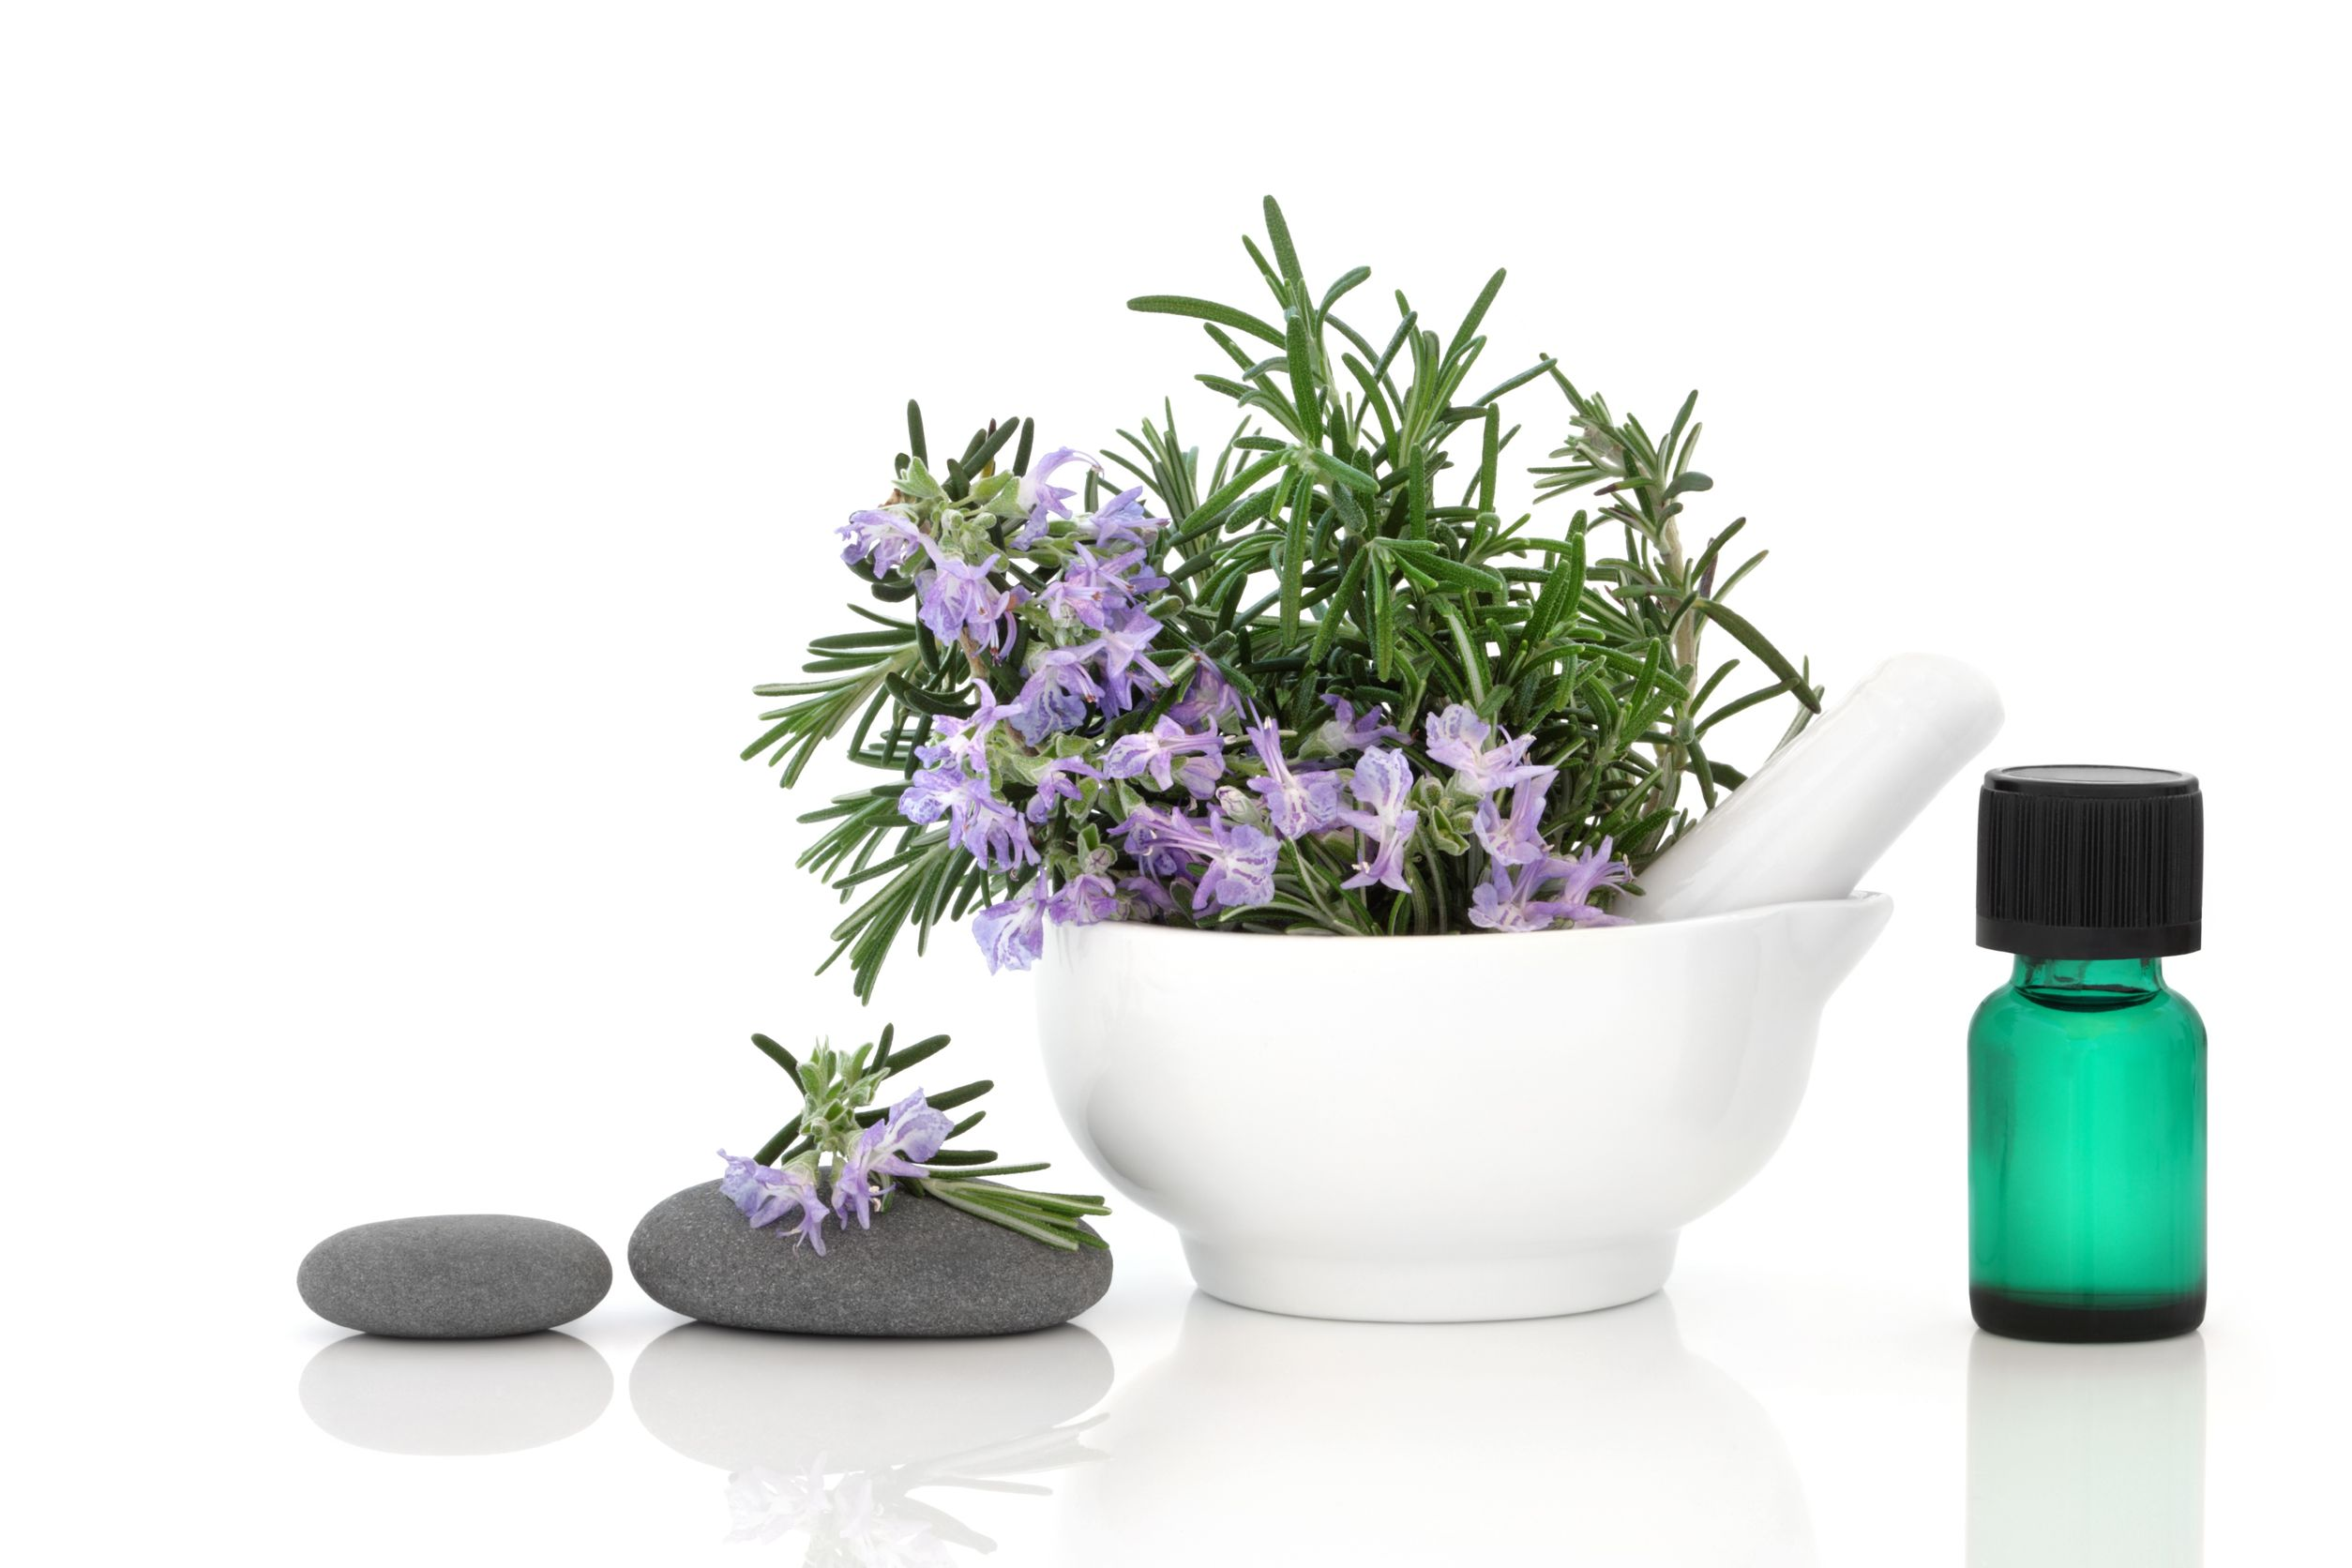 Rosemary Leaves Herbal Oil Uses Medicinal Values Health Benefits Healthyliving From